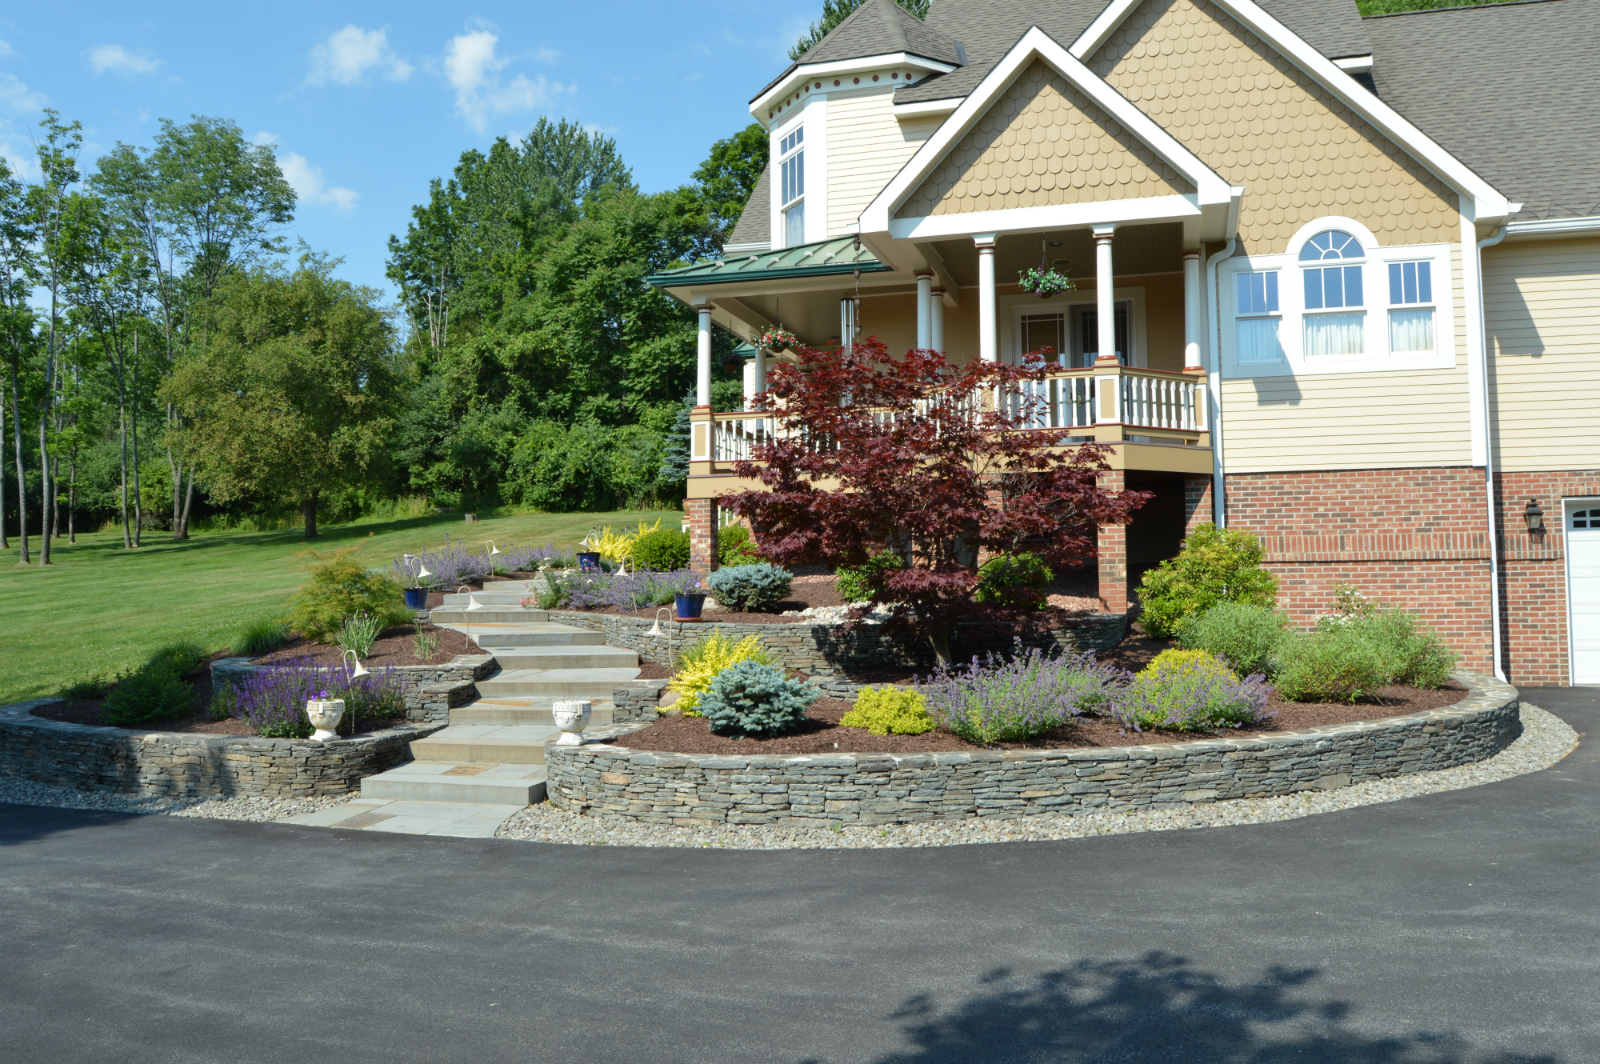 Landscaping Ideas to Instantly Boost Curb Appeal in Warwick, NY